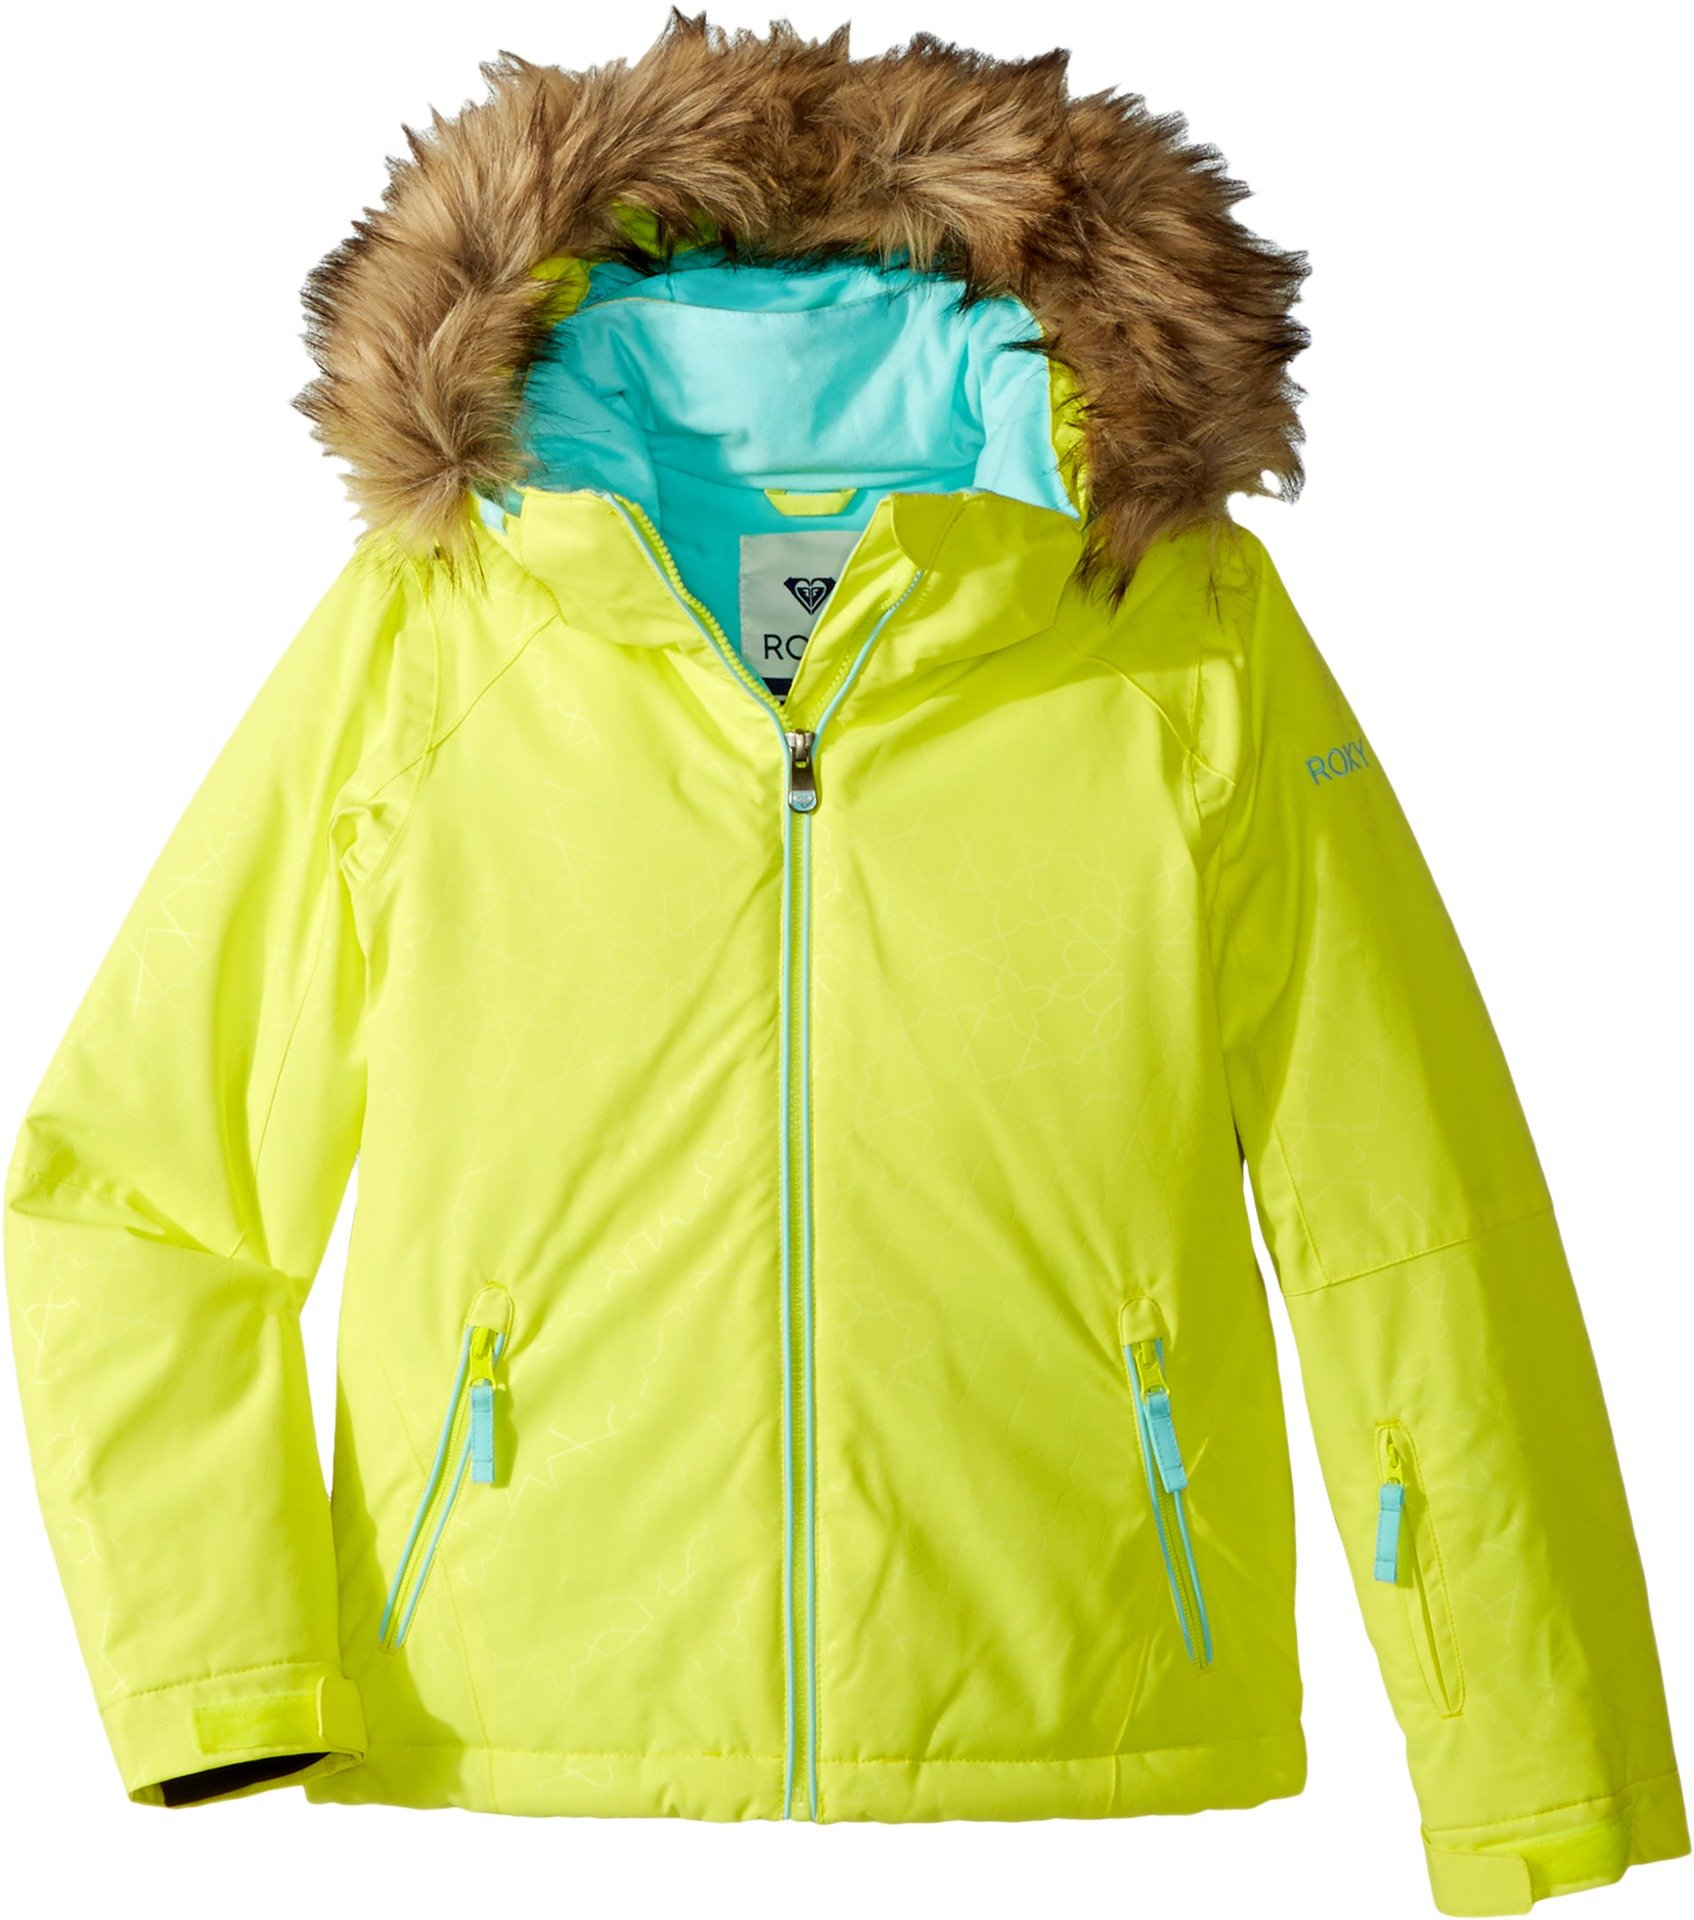 Roxy Big Girls' American Pie Solid Snow Jacket, Lemon Tonic_Gana Emboss, 14/XL by Roxy (Image #3)